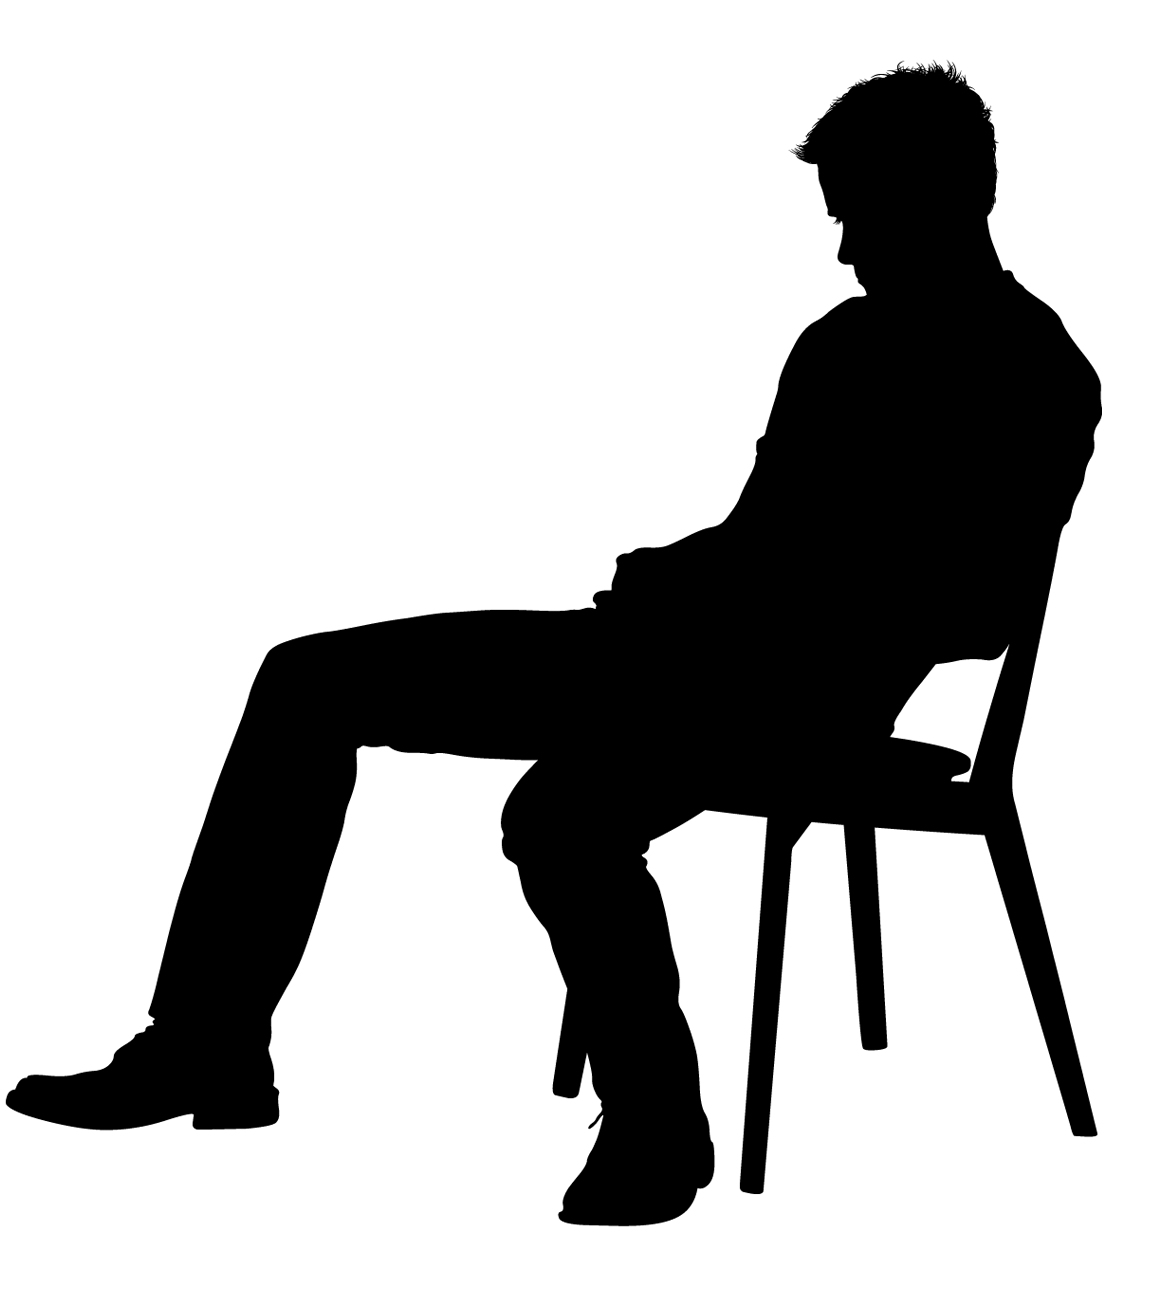 silhouette of person sitting 12 people sitting silhouette png transparent onlygfxcom of sitting silhouette person